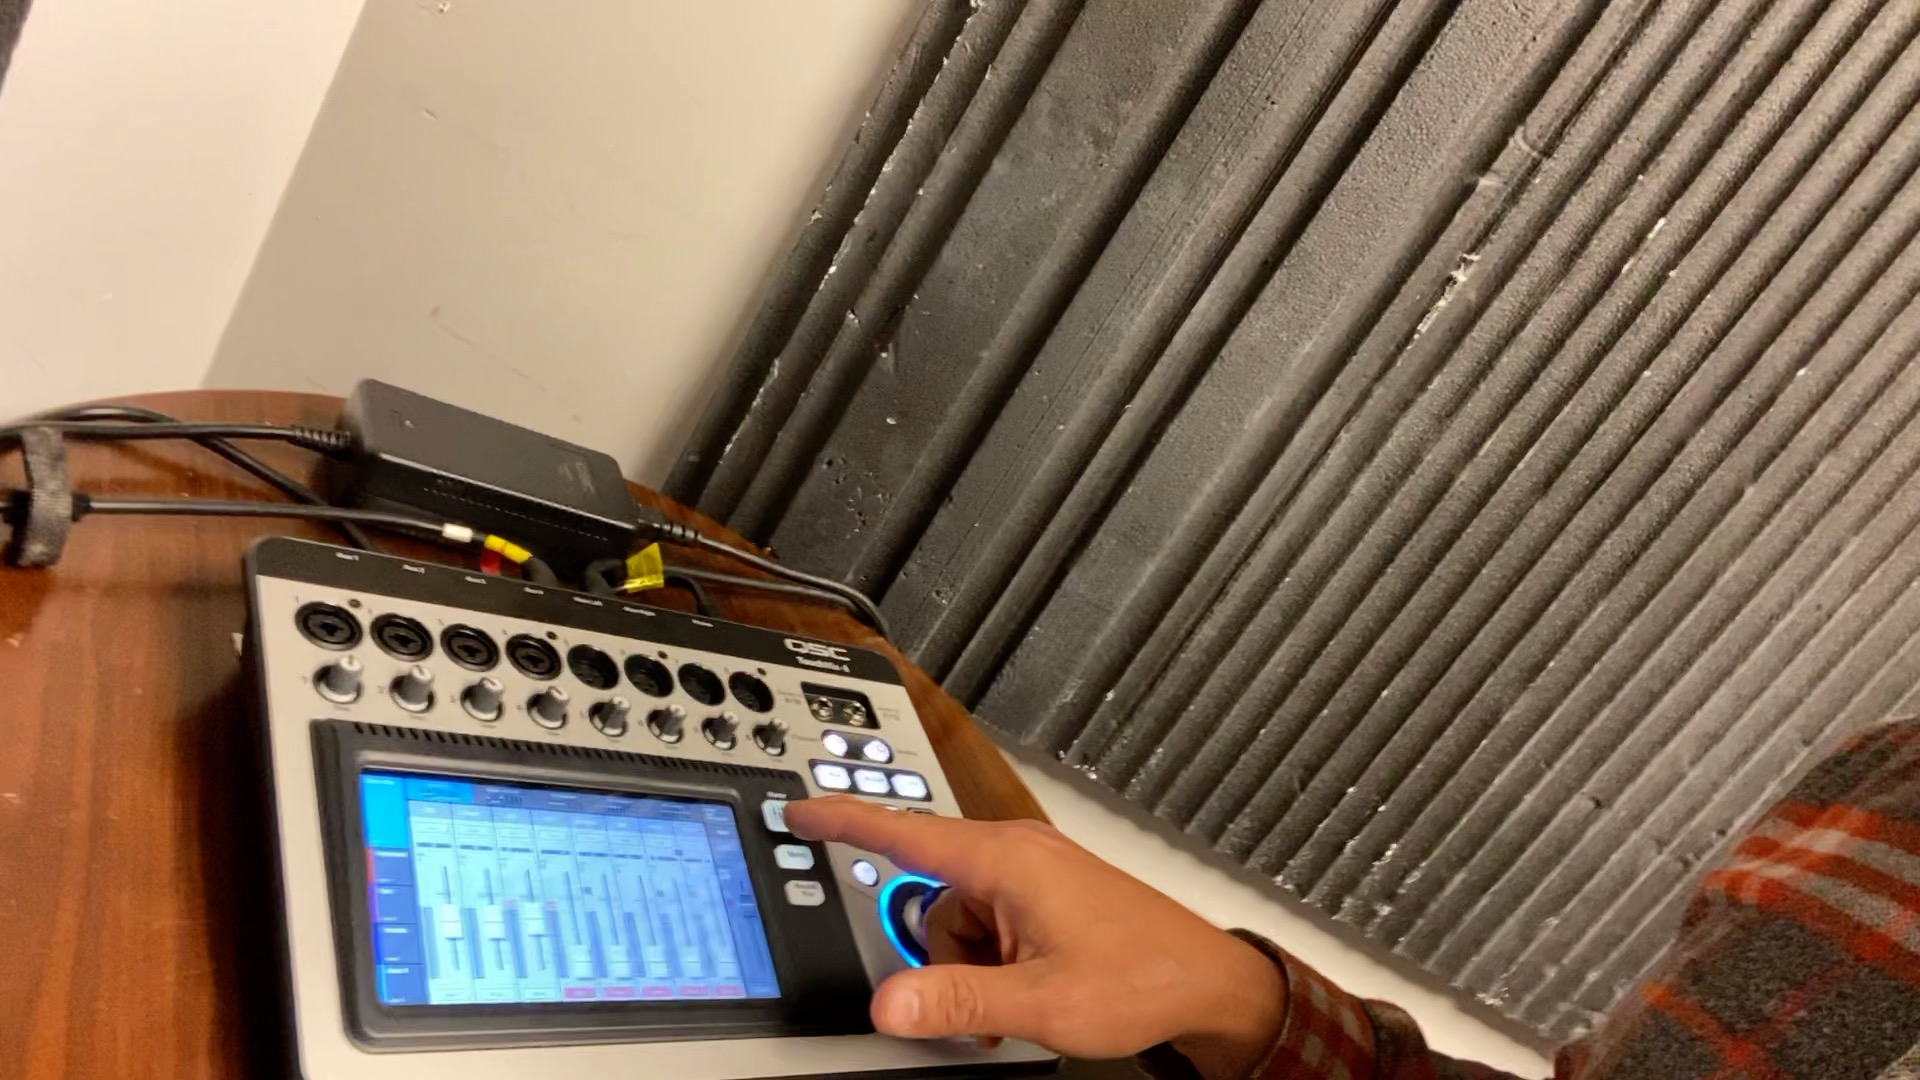 The First Thing to Learn on the QSC Touchmix – The Home Button